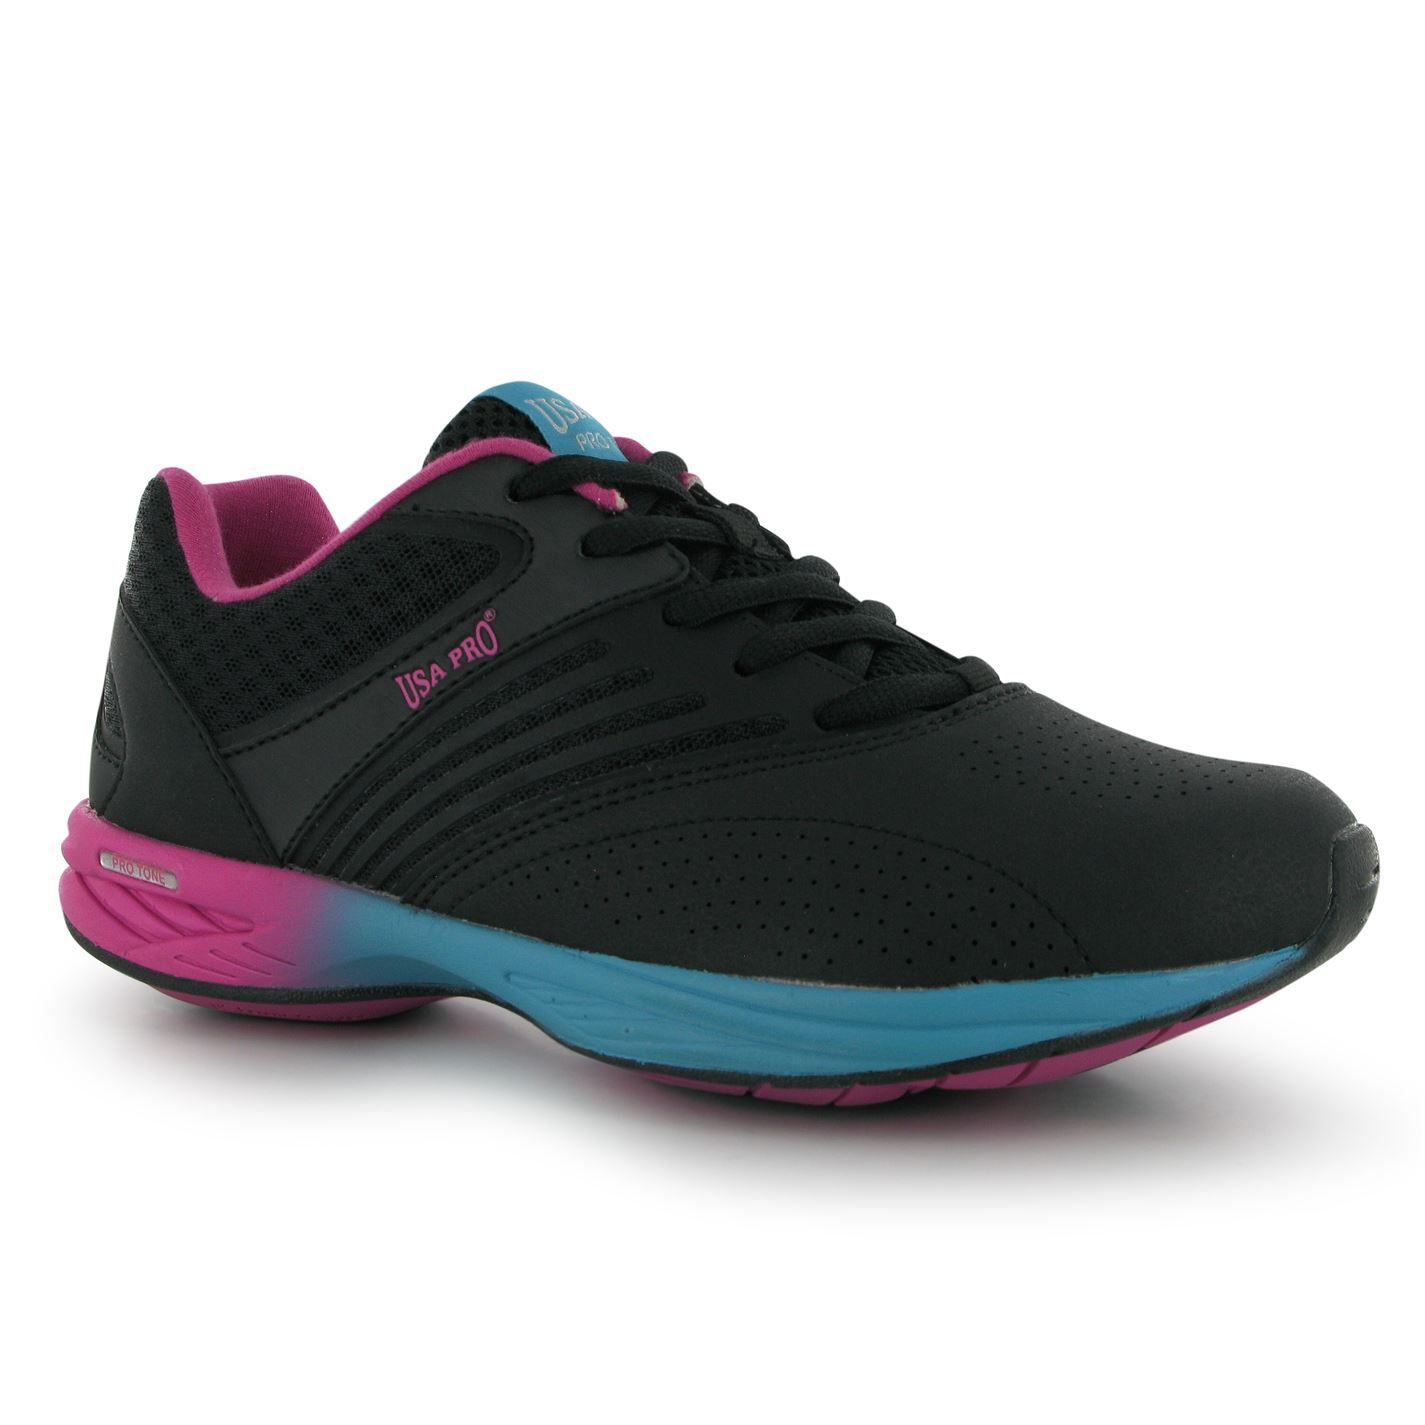 USA Pro Ladies Fitness Footwear>> Now £21 health fitness